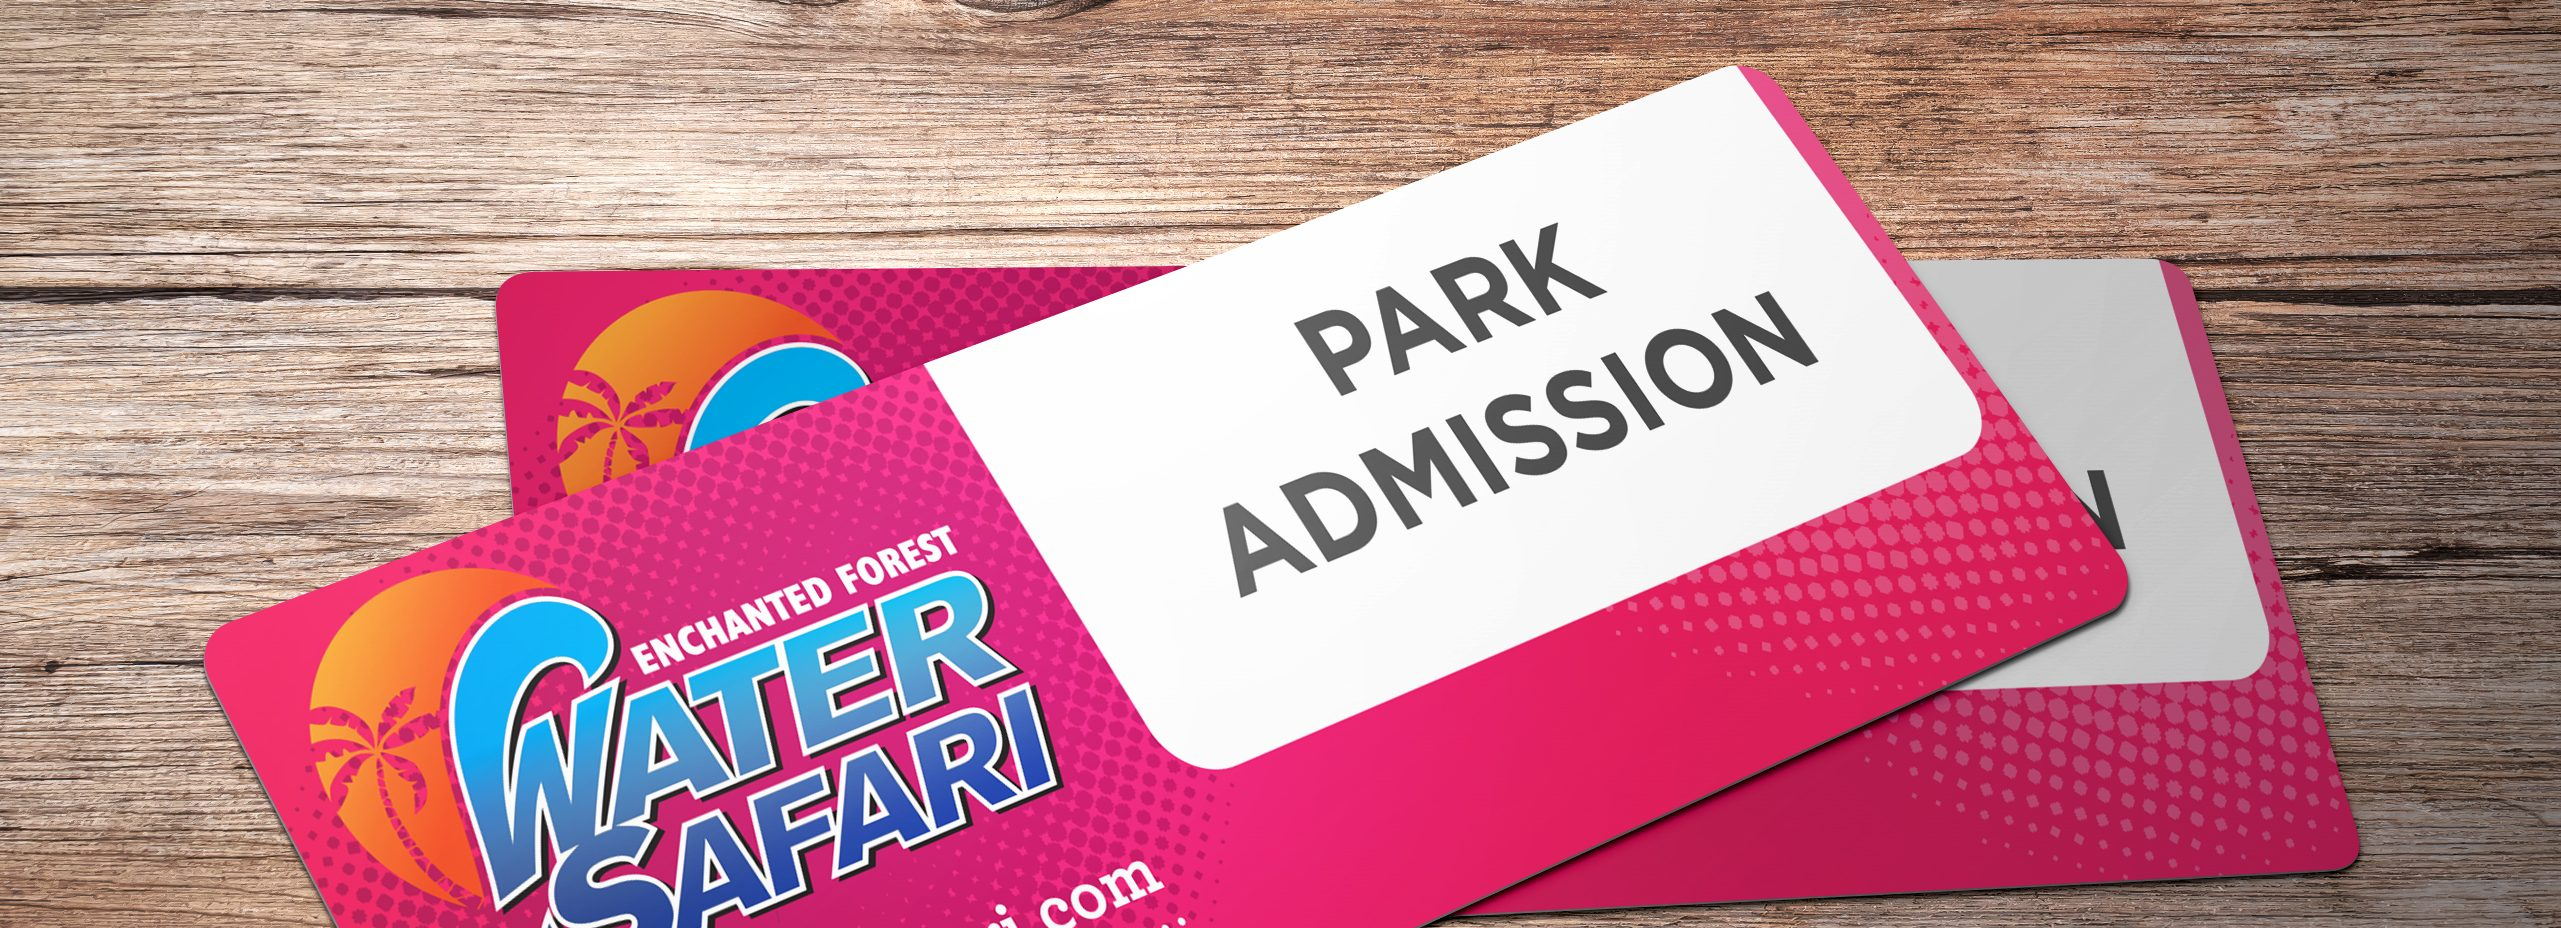 Two enchanted forest water safari park admission tickets against a wooden background